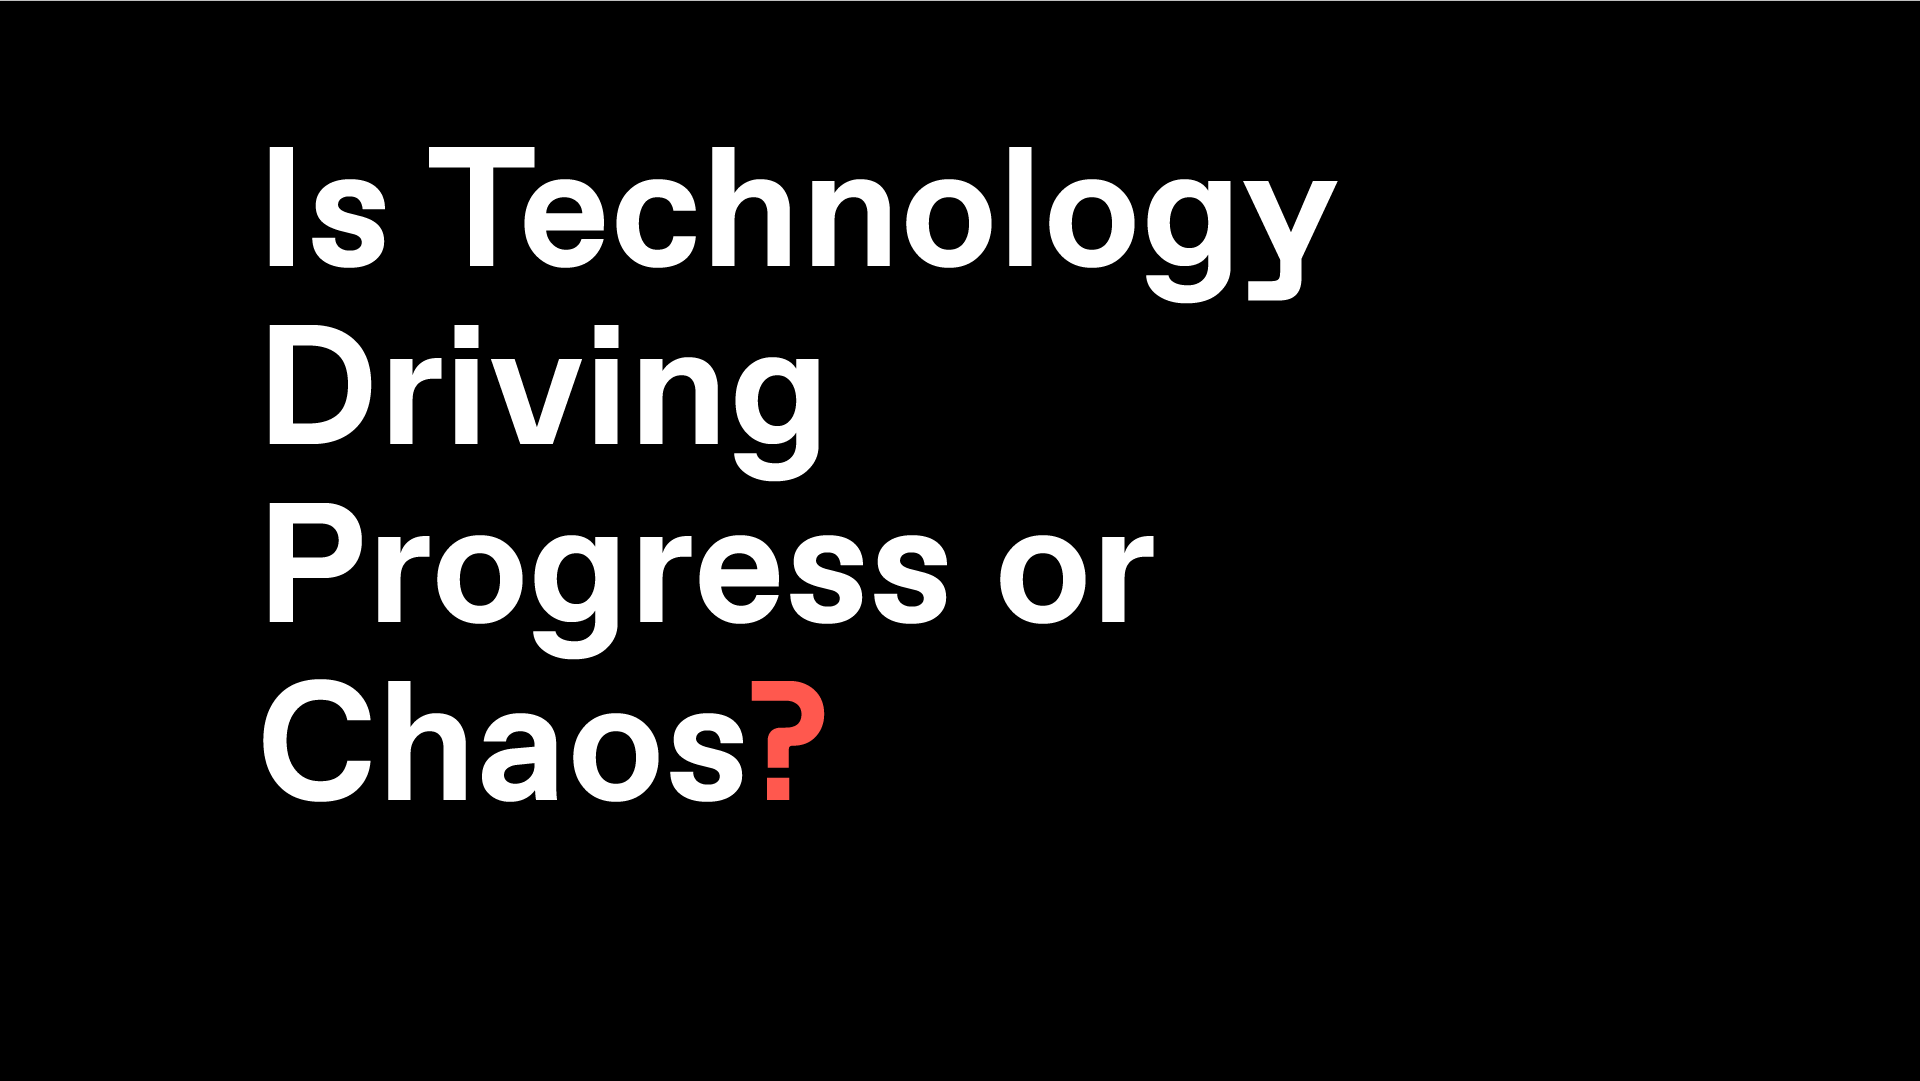 https://unfinished.com/news/unfinished-live-episode-3-asks-is-technology-driving-progress-or-chaos/